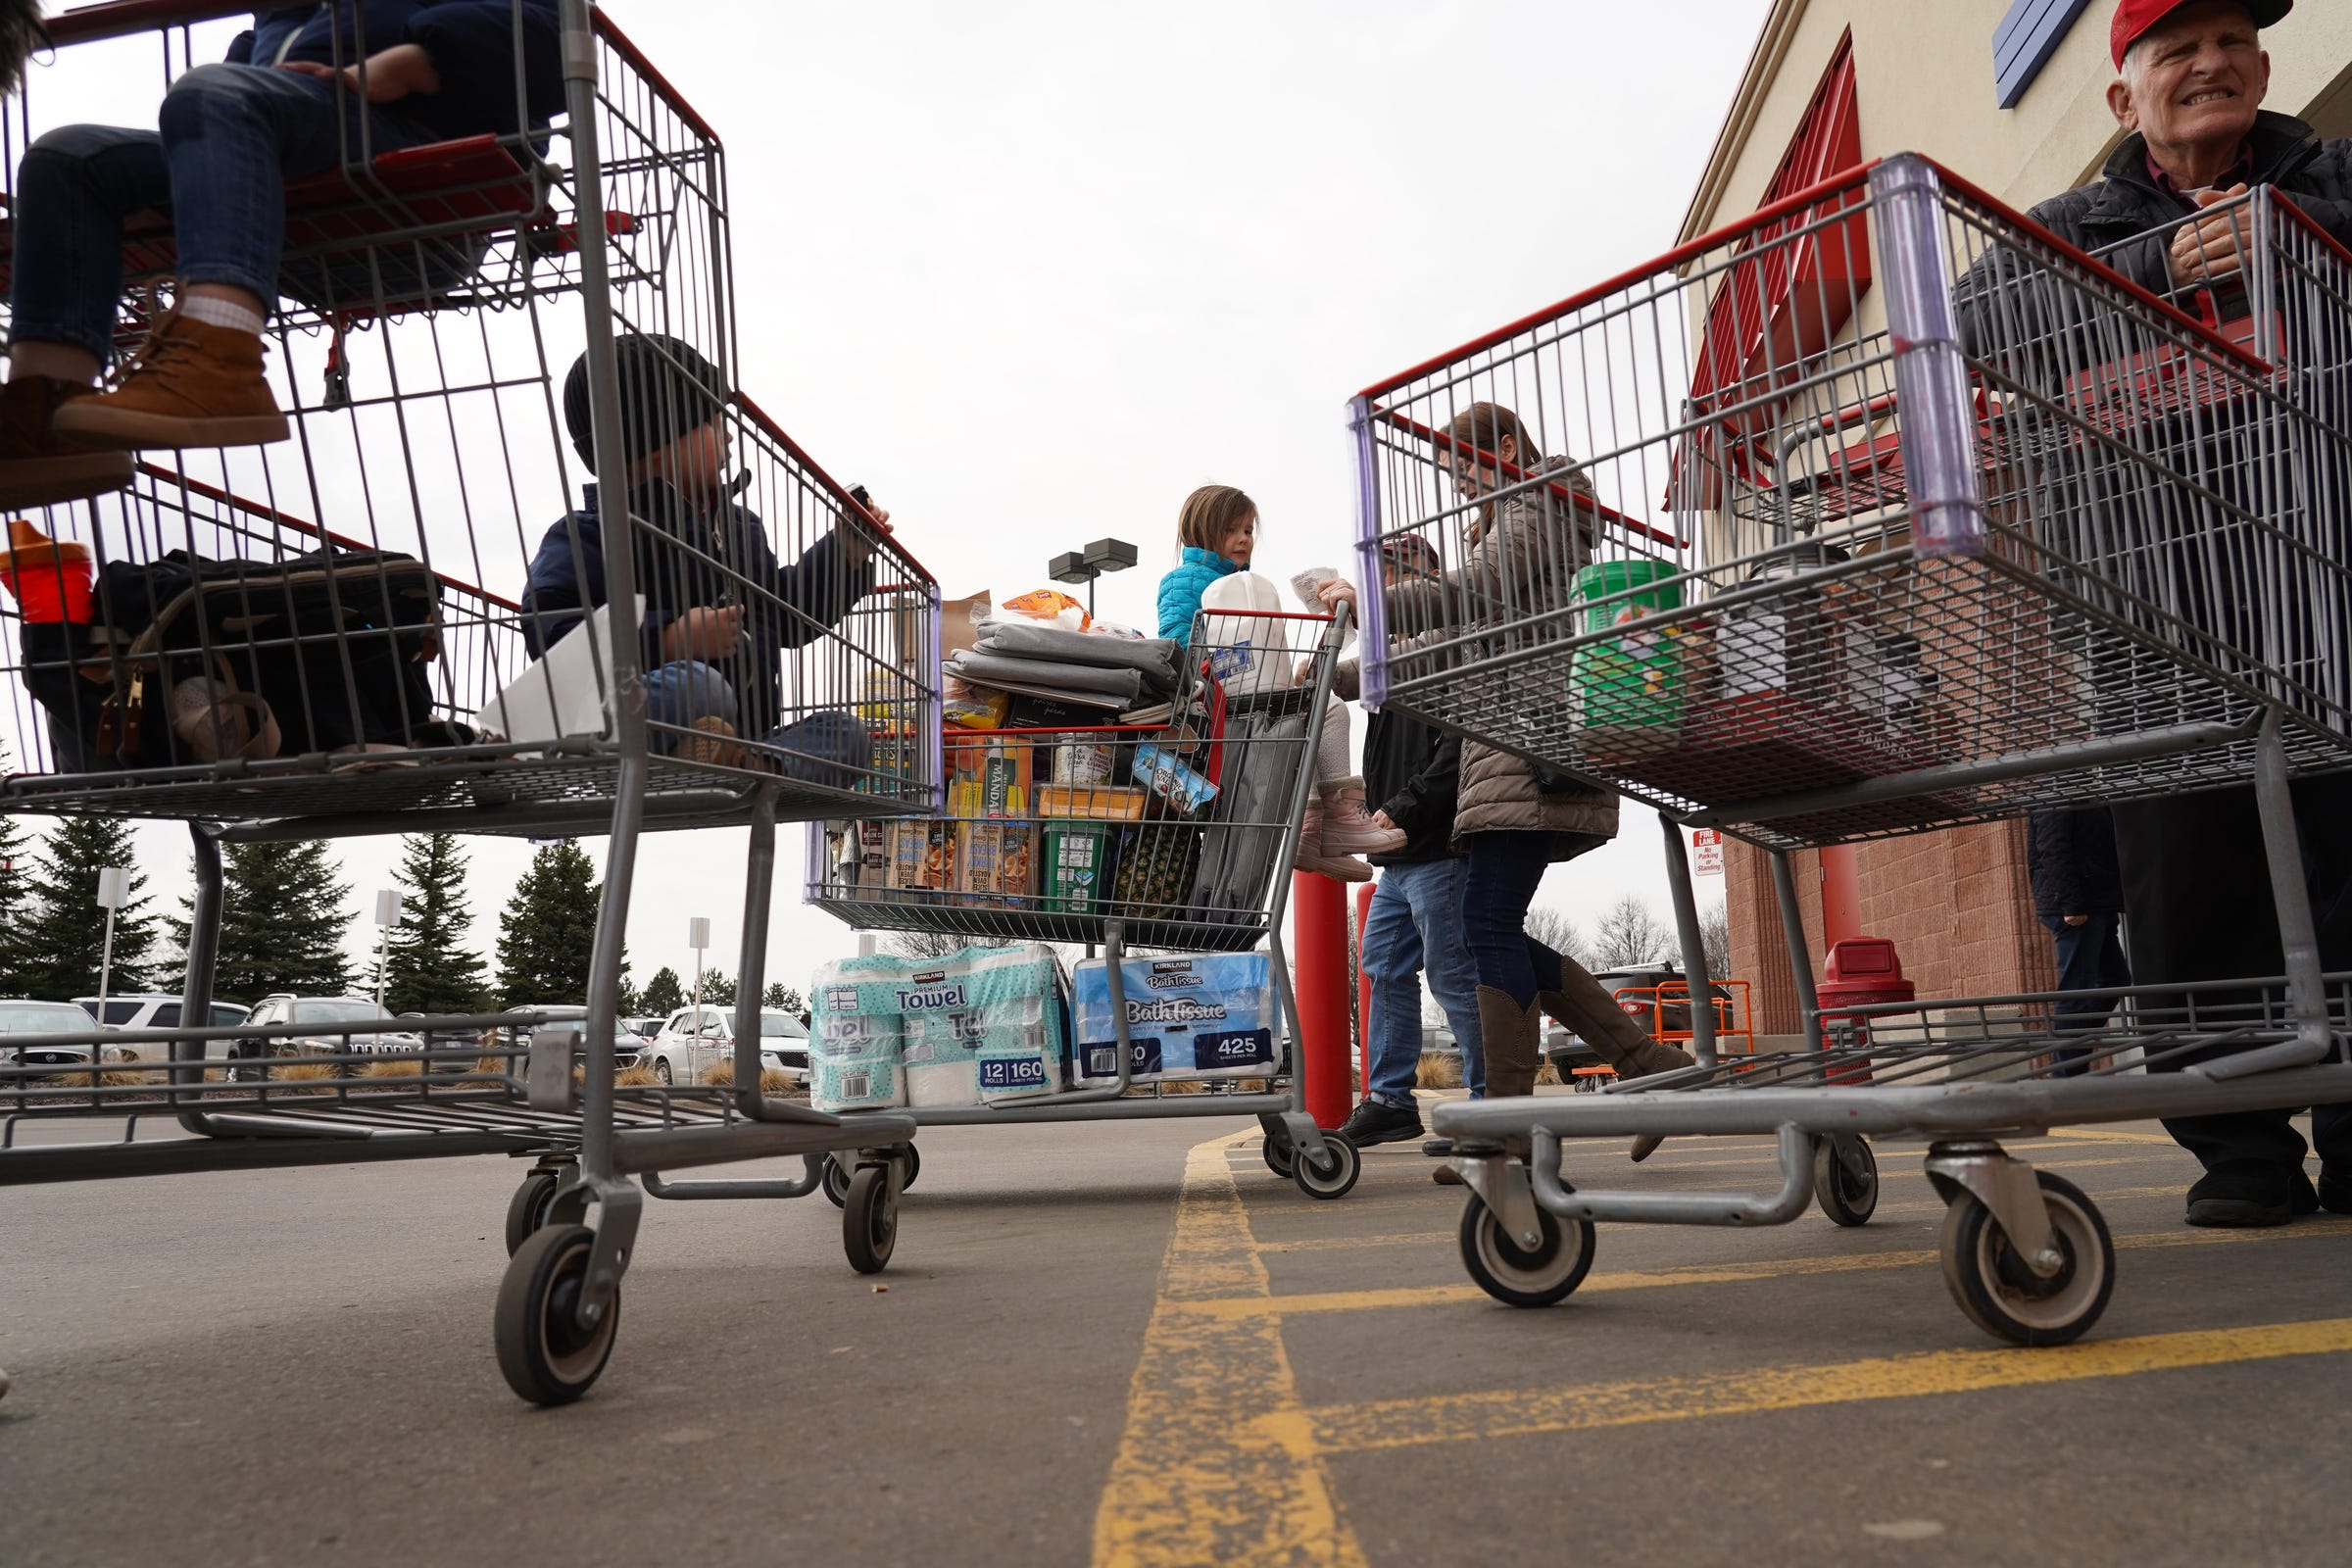 People grab supplies while shopping at Costco in Auburn Hills, Michigan on Wednesday, March 11, 2020.